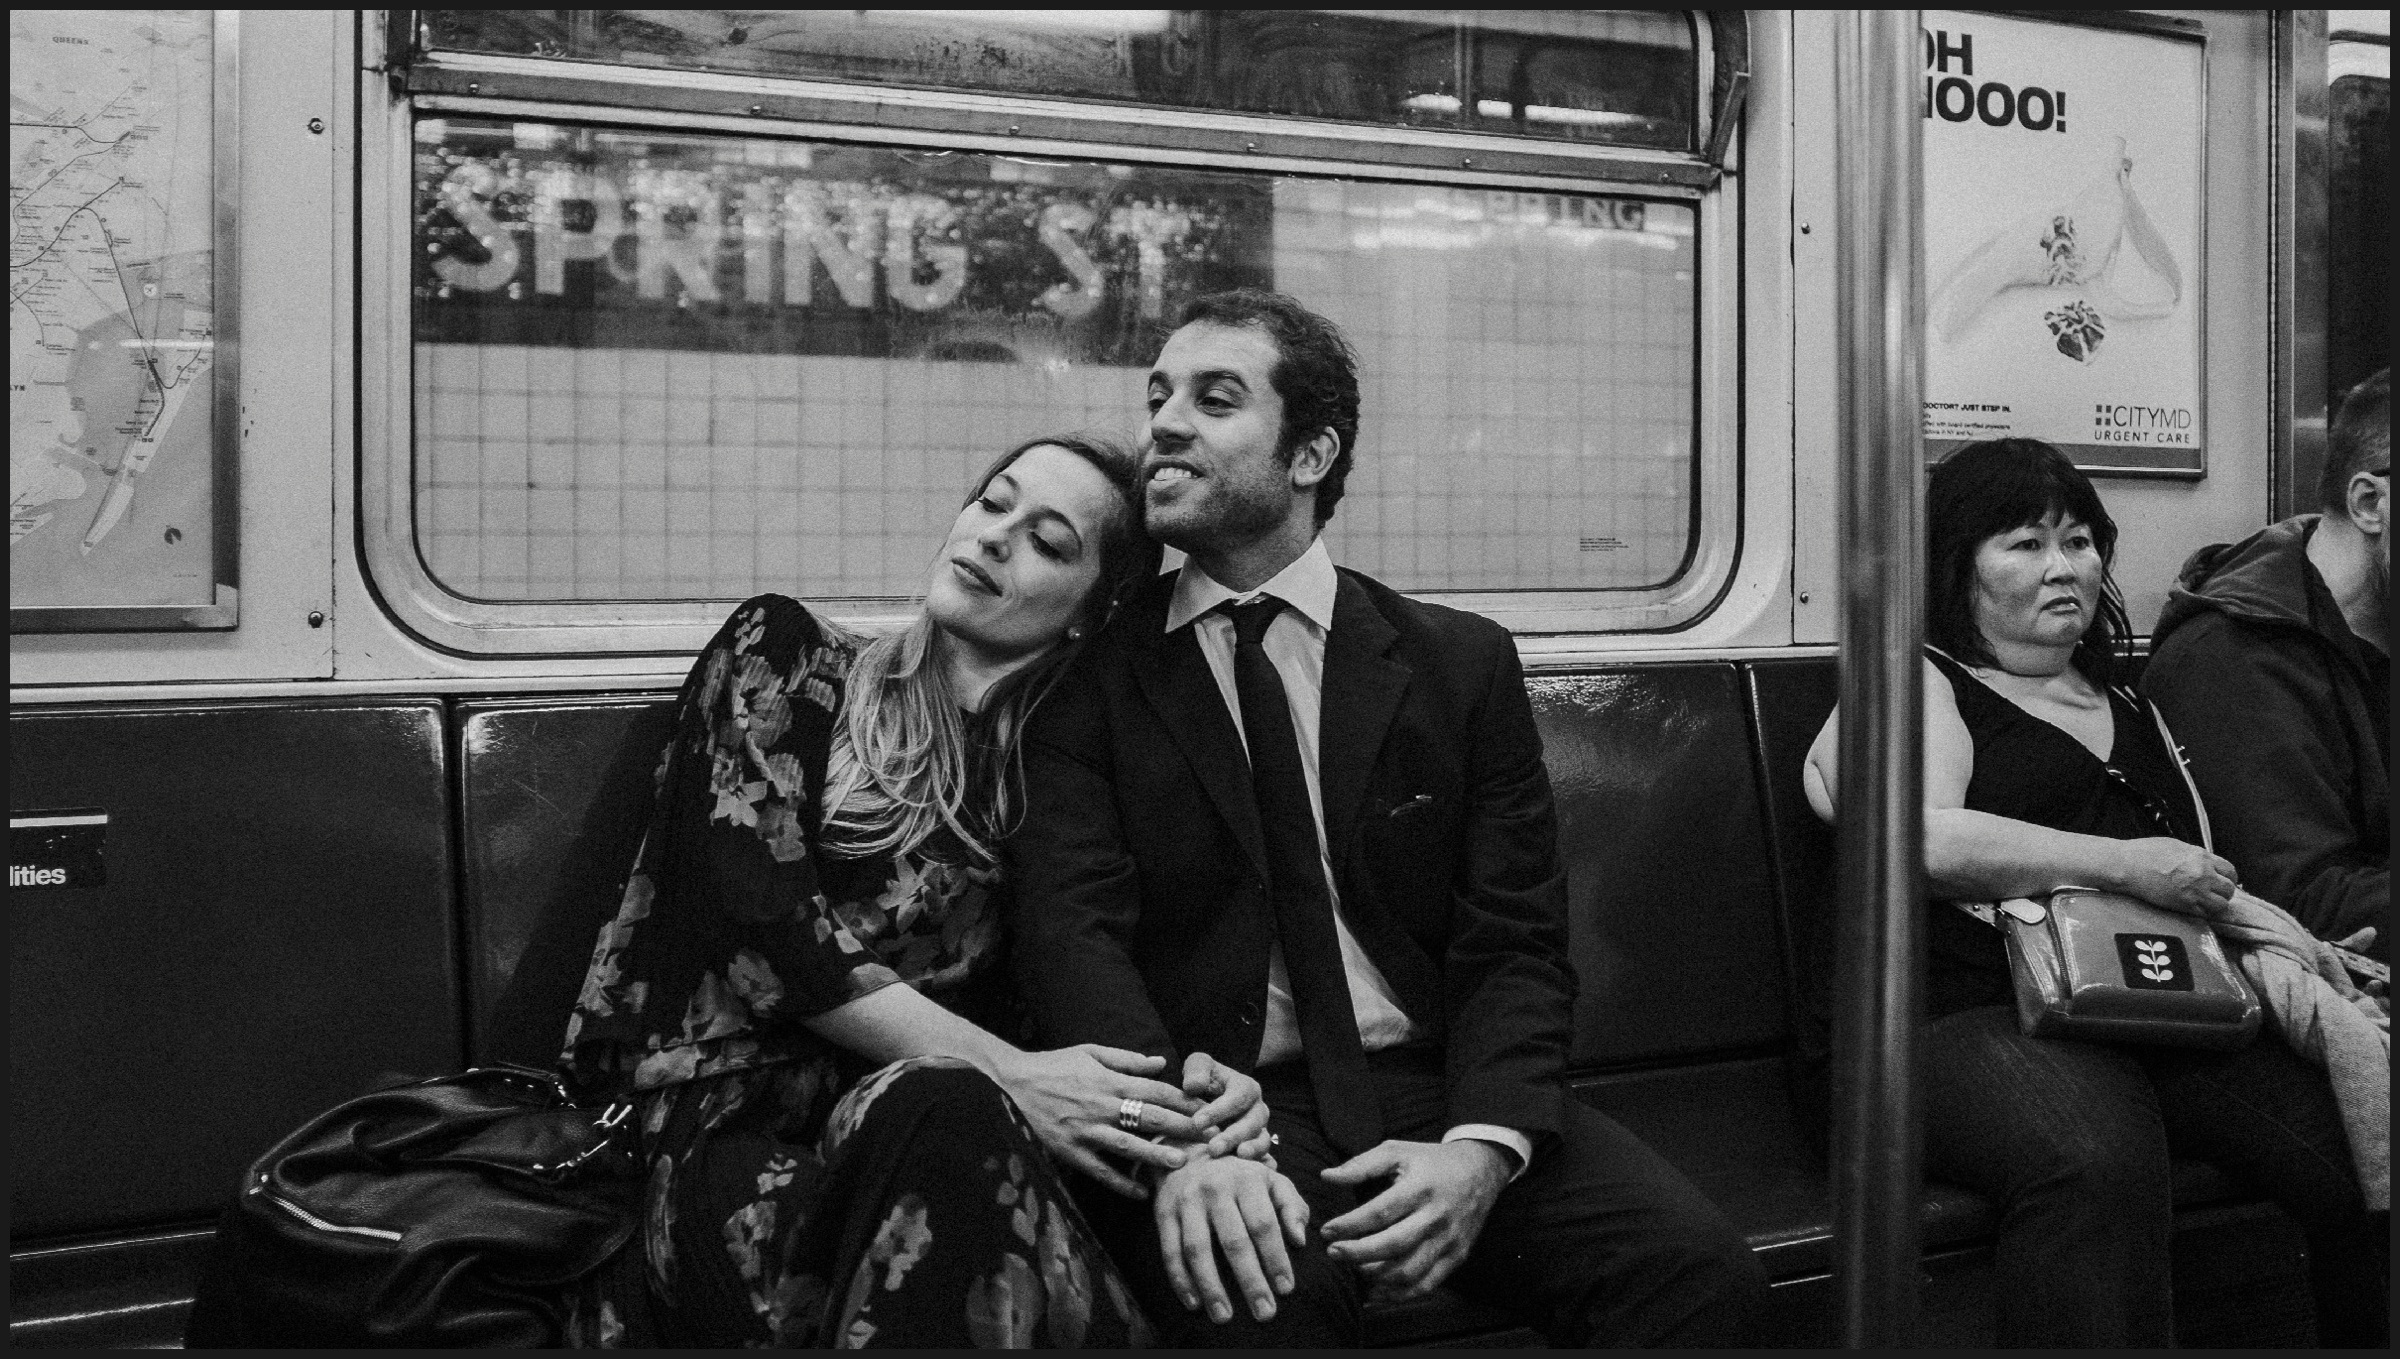 engagement photos inside a new york train